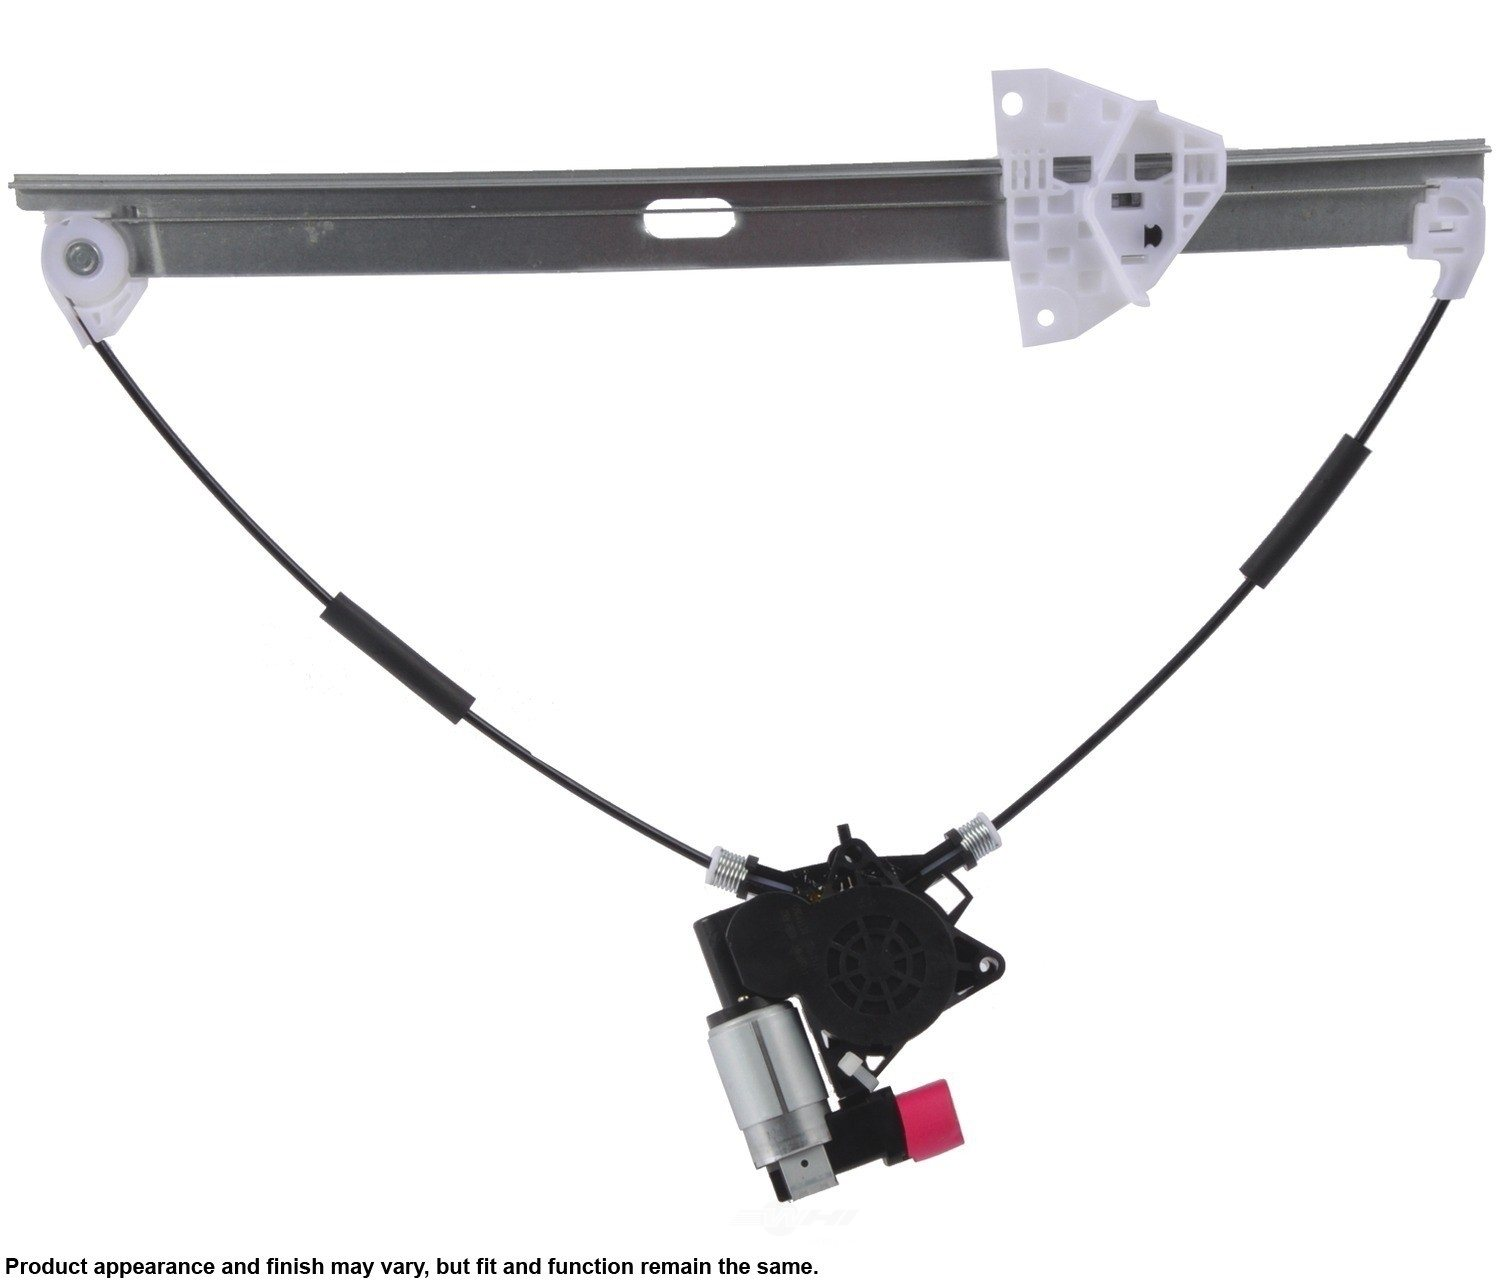 CARDONE NEW - Power Window Motor And Regulator Assembly - A1S 82-1769CR